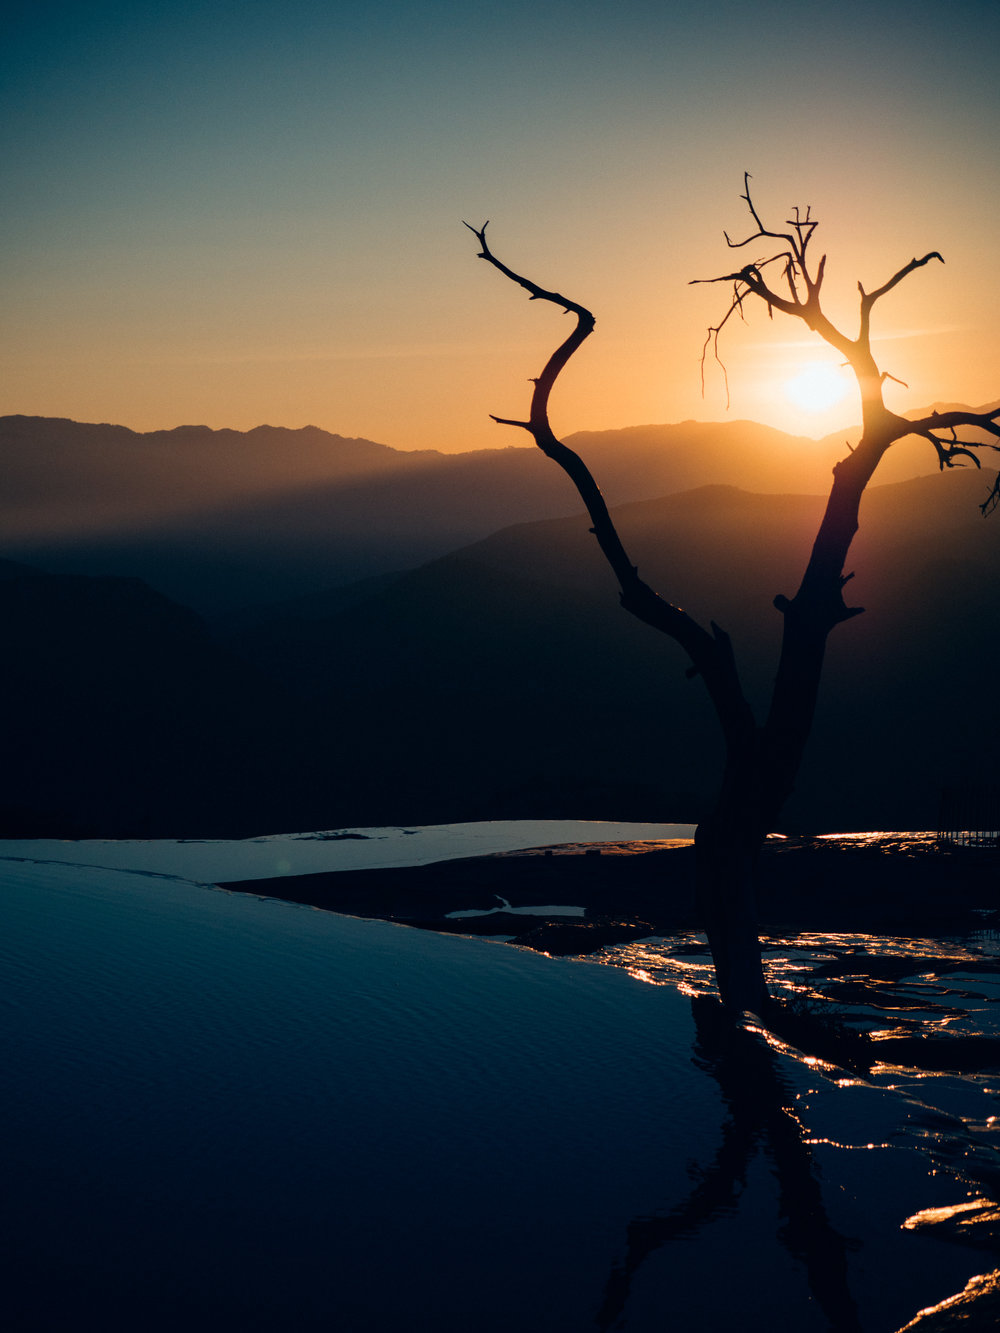 A (very) early morning departure brought us to the sunrise at Hierve el Agua, complete with infinity pools and a lone, barren tree just begging to be photographed.